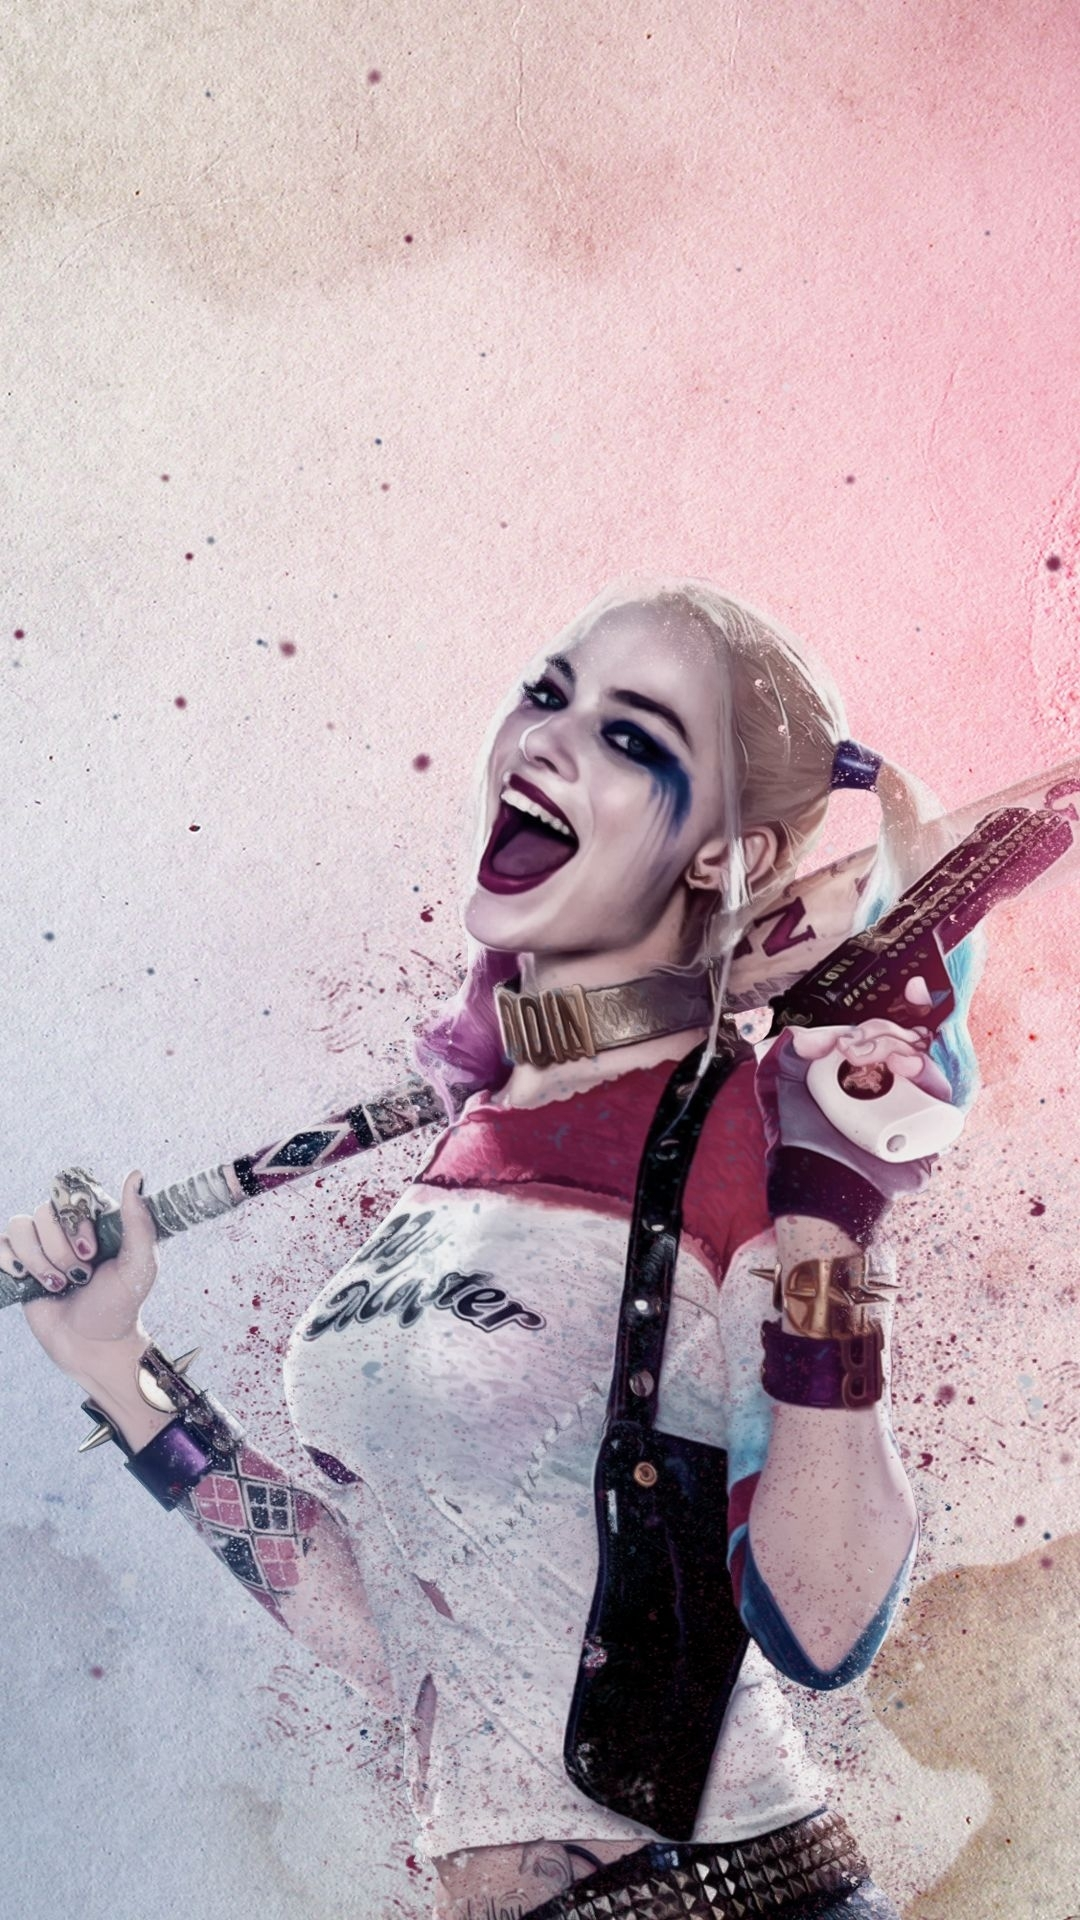 harley quinn suicide squad iphone 6 wallpaper - http://wallpaperzone